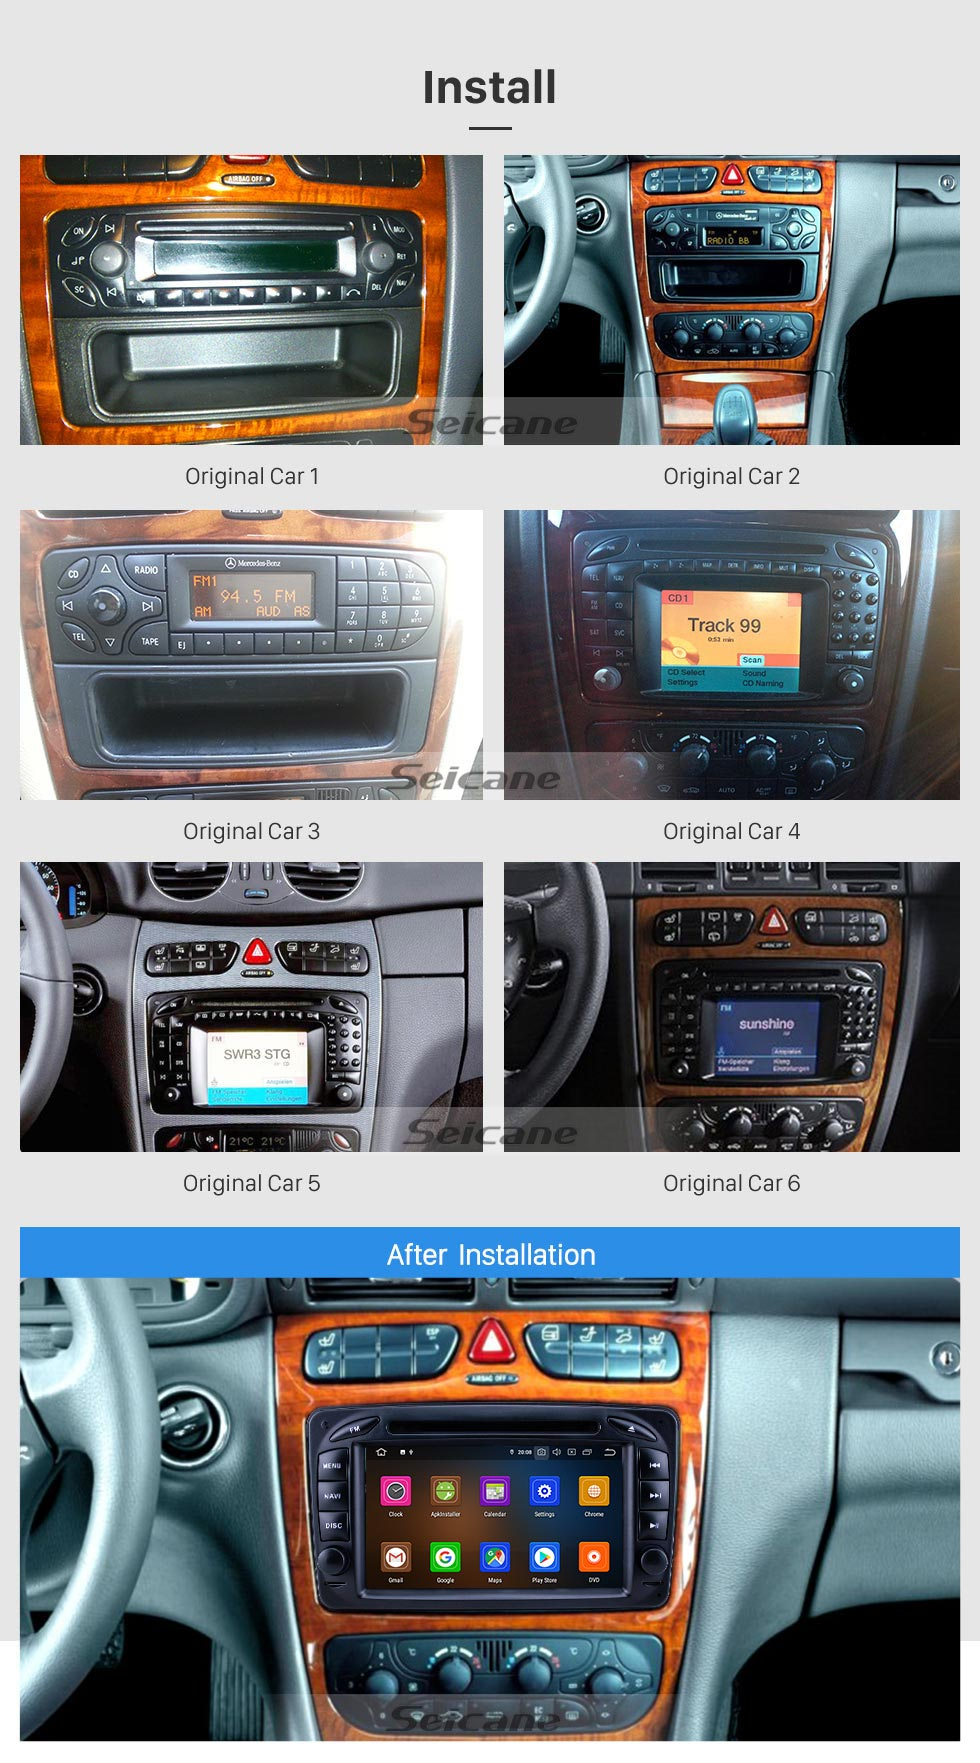 Seicane 7 inch Android 9.0 HD Touchscreen GPS Navigation Radio for 1998-2006 Mercedes Benz CLK-Class W209/G-Class W463 with Carplay Bluetooth support 1080P Video